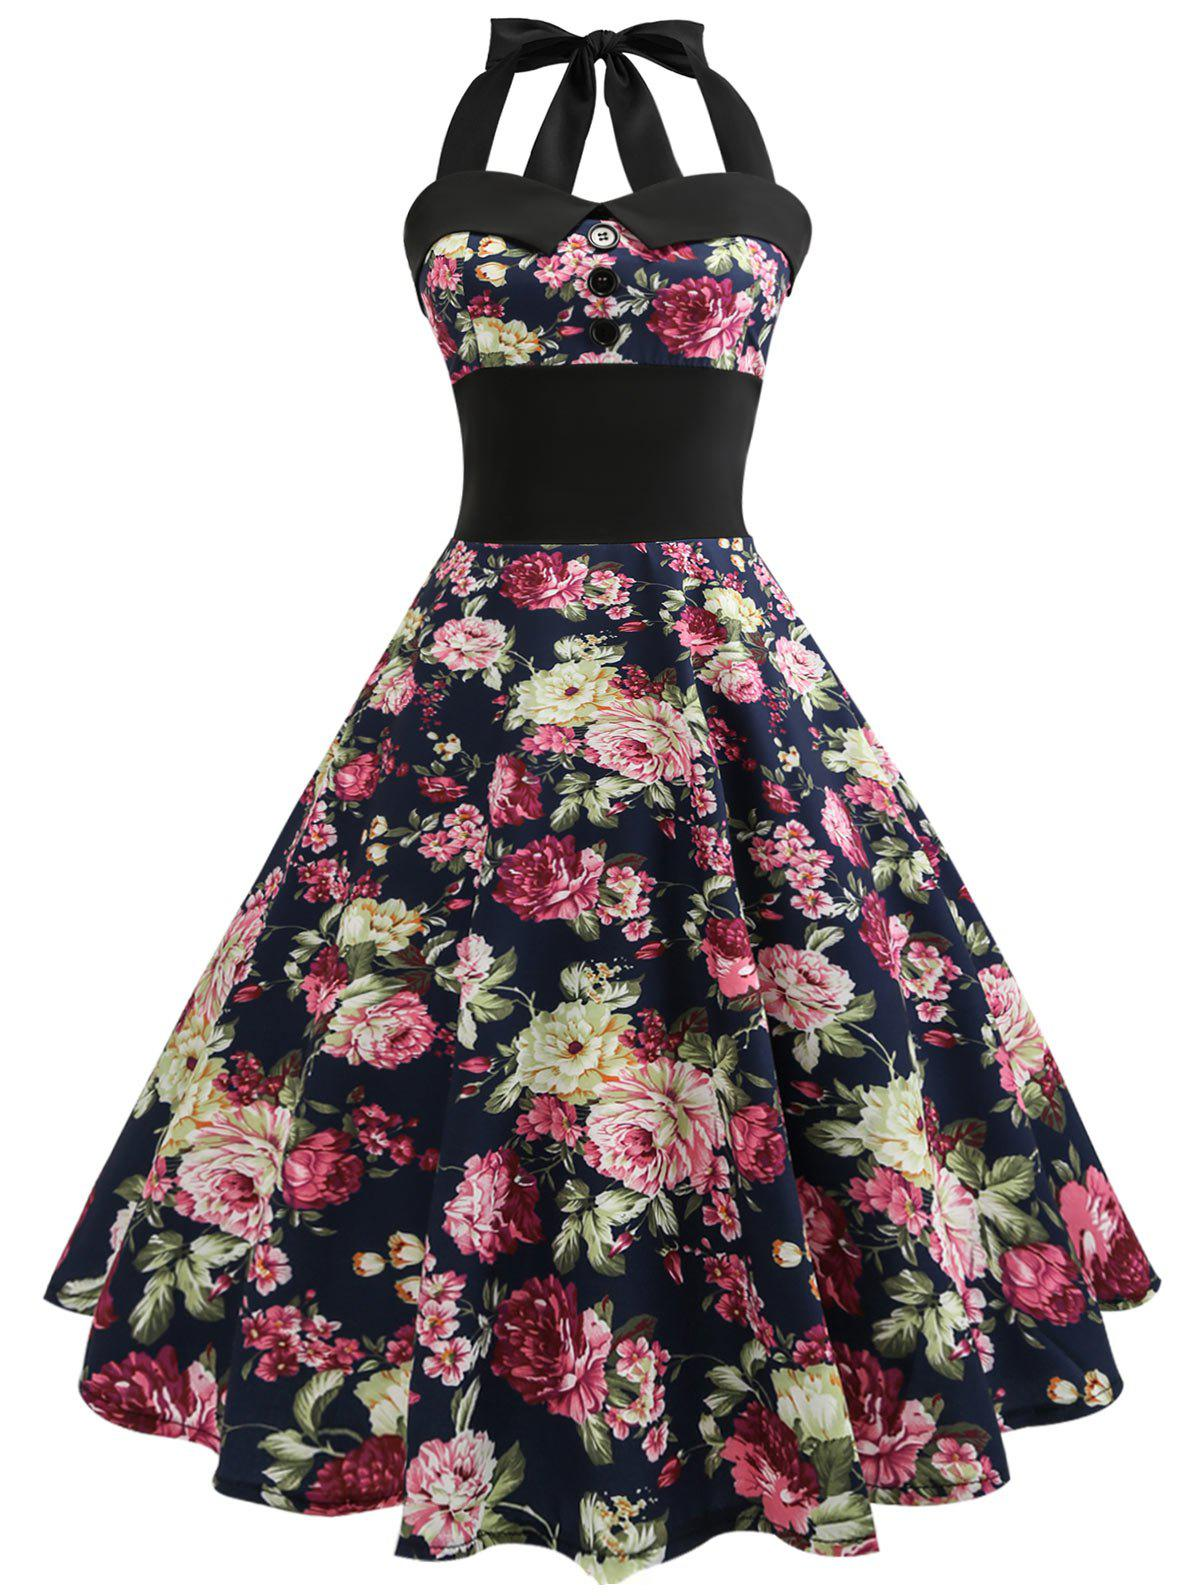 Shops Vintage Halter Floral 50s Swing Dress